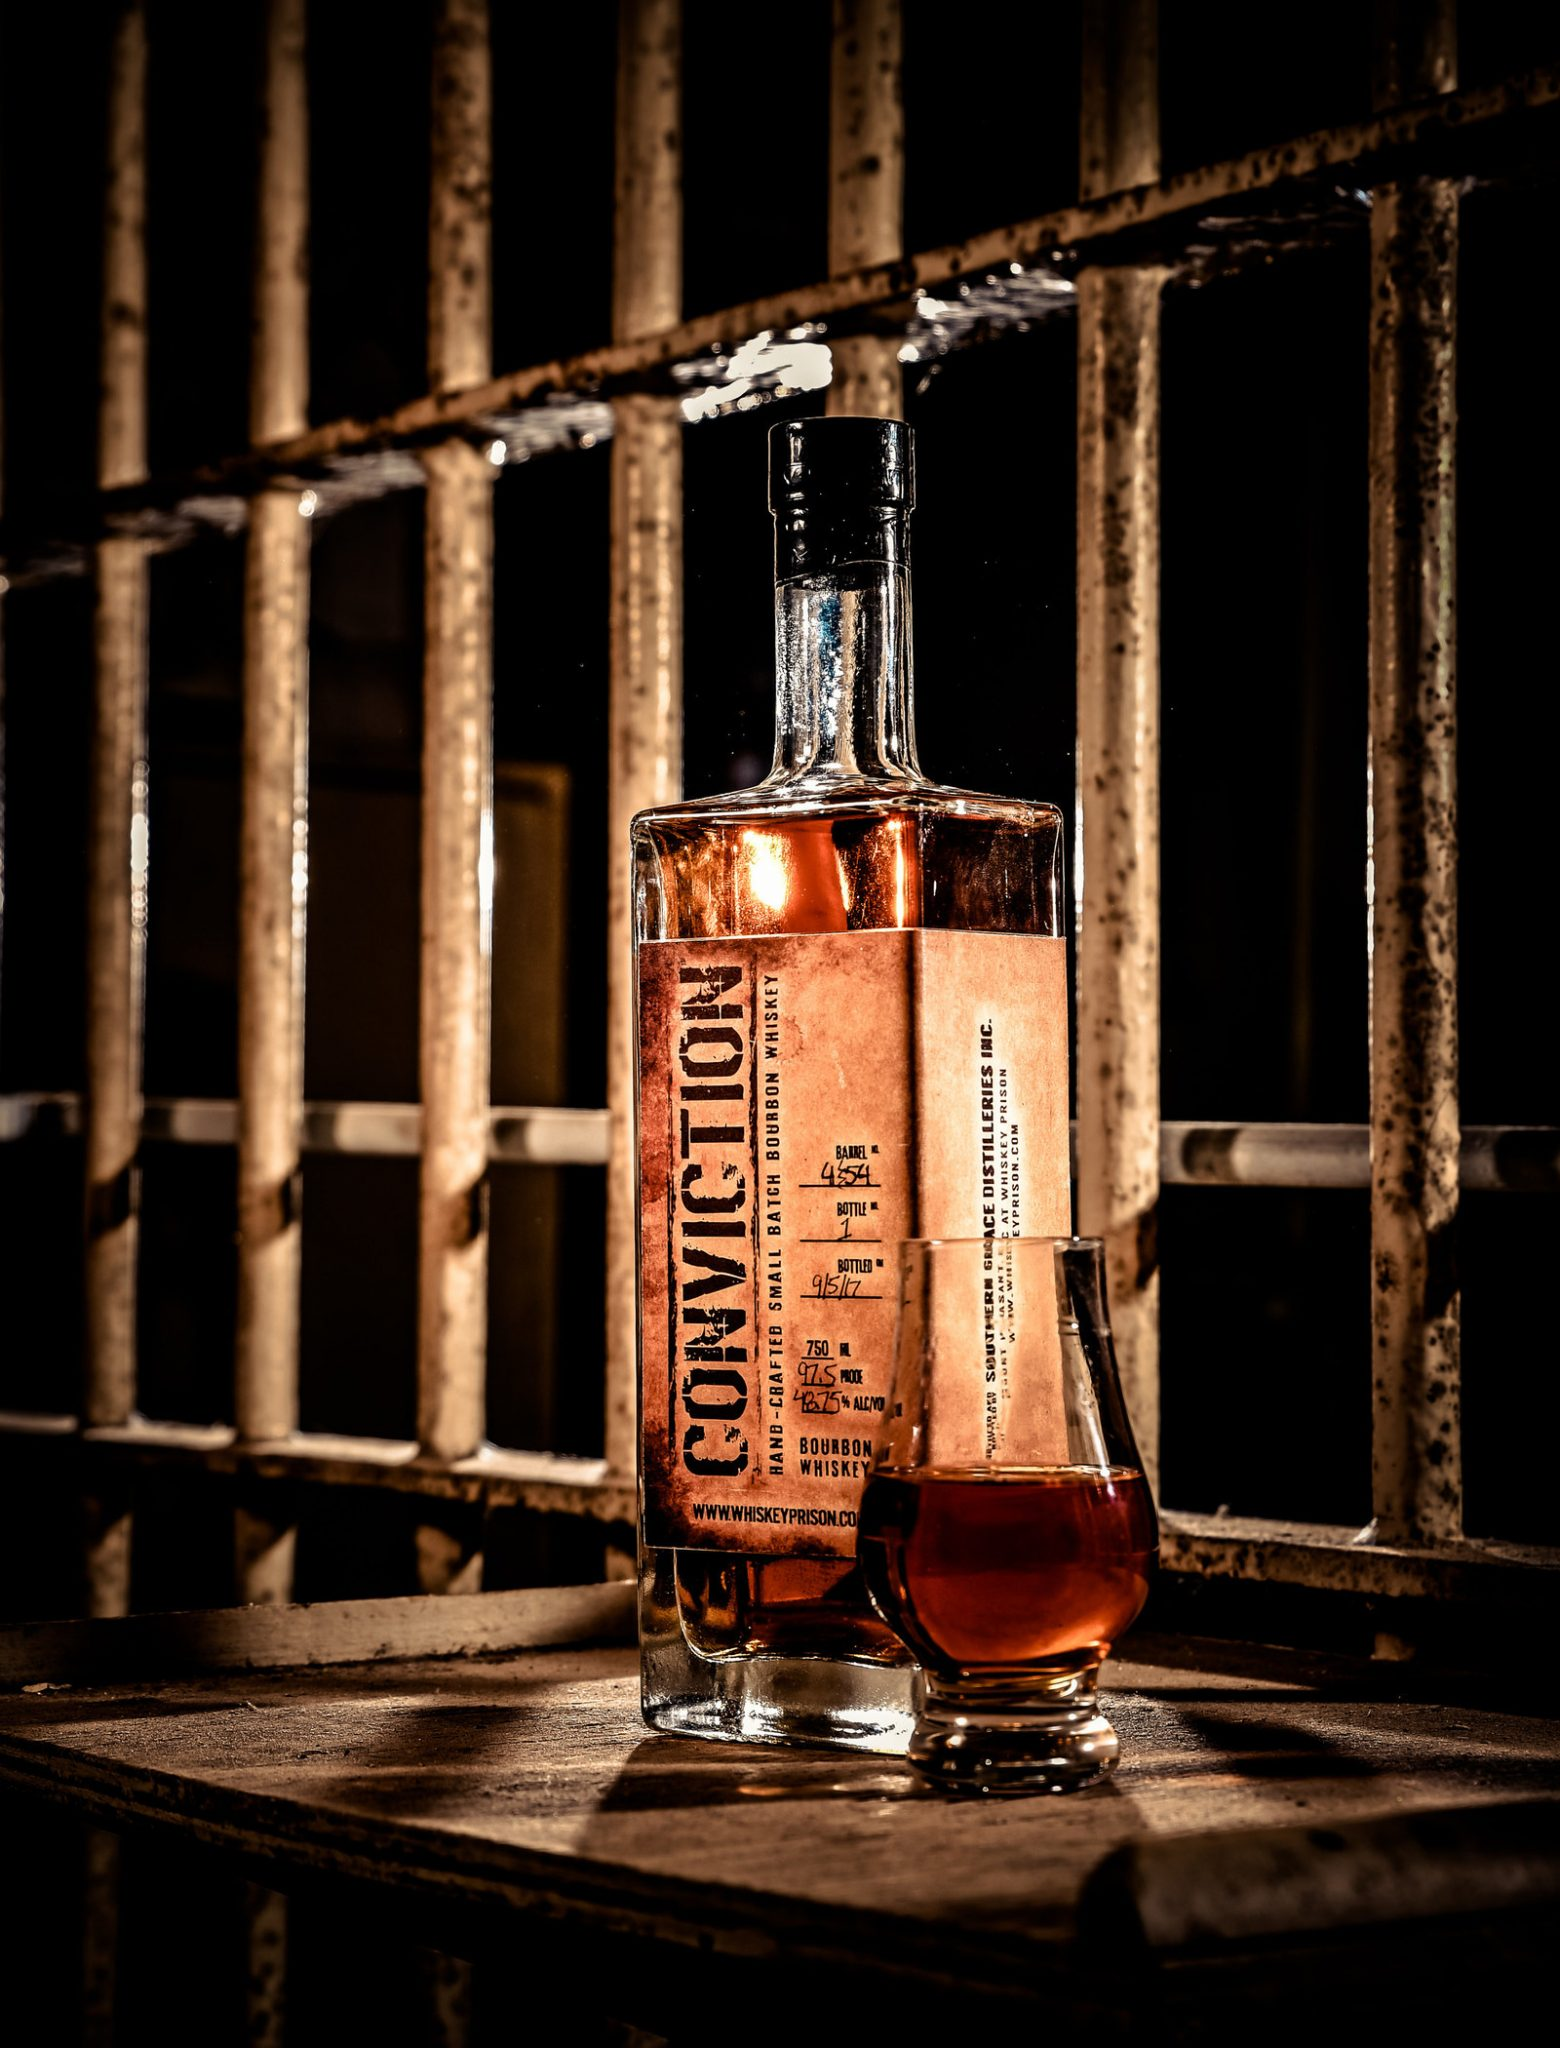 Conviction Small Batch Bourbon Behind Prison Bars